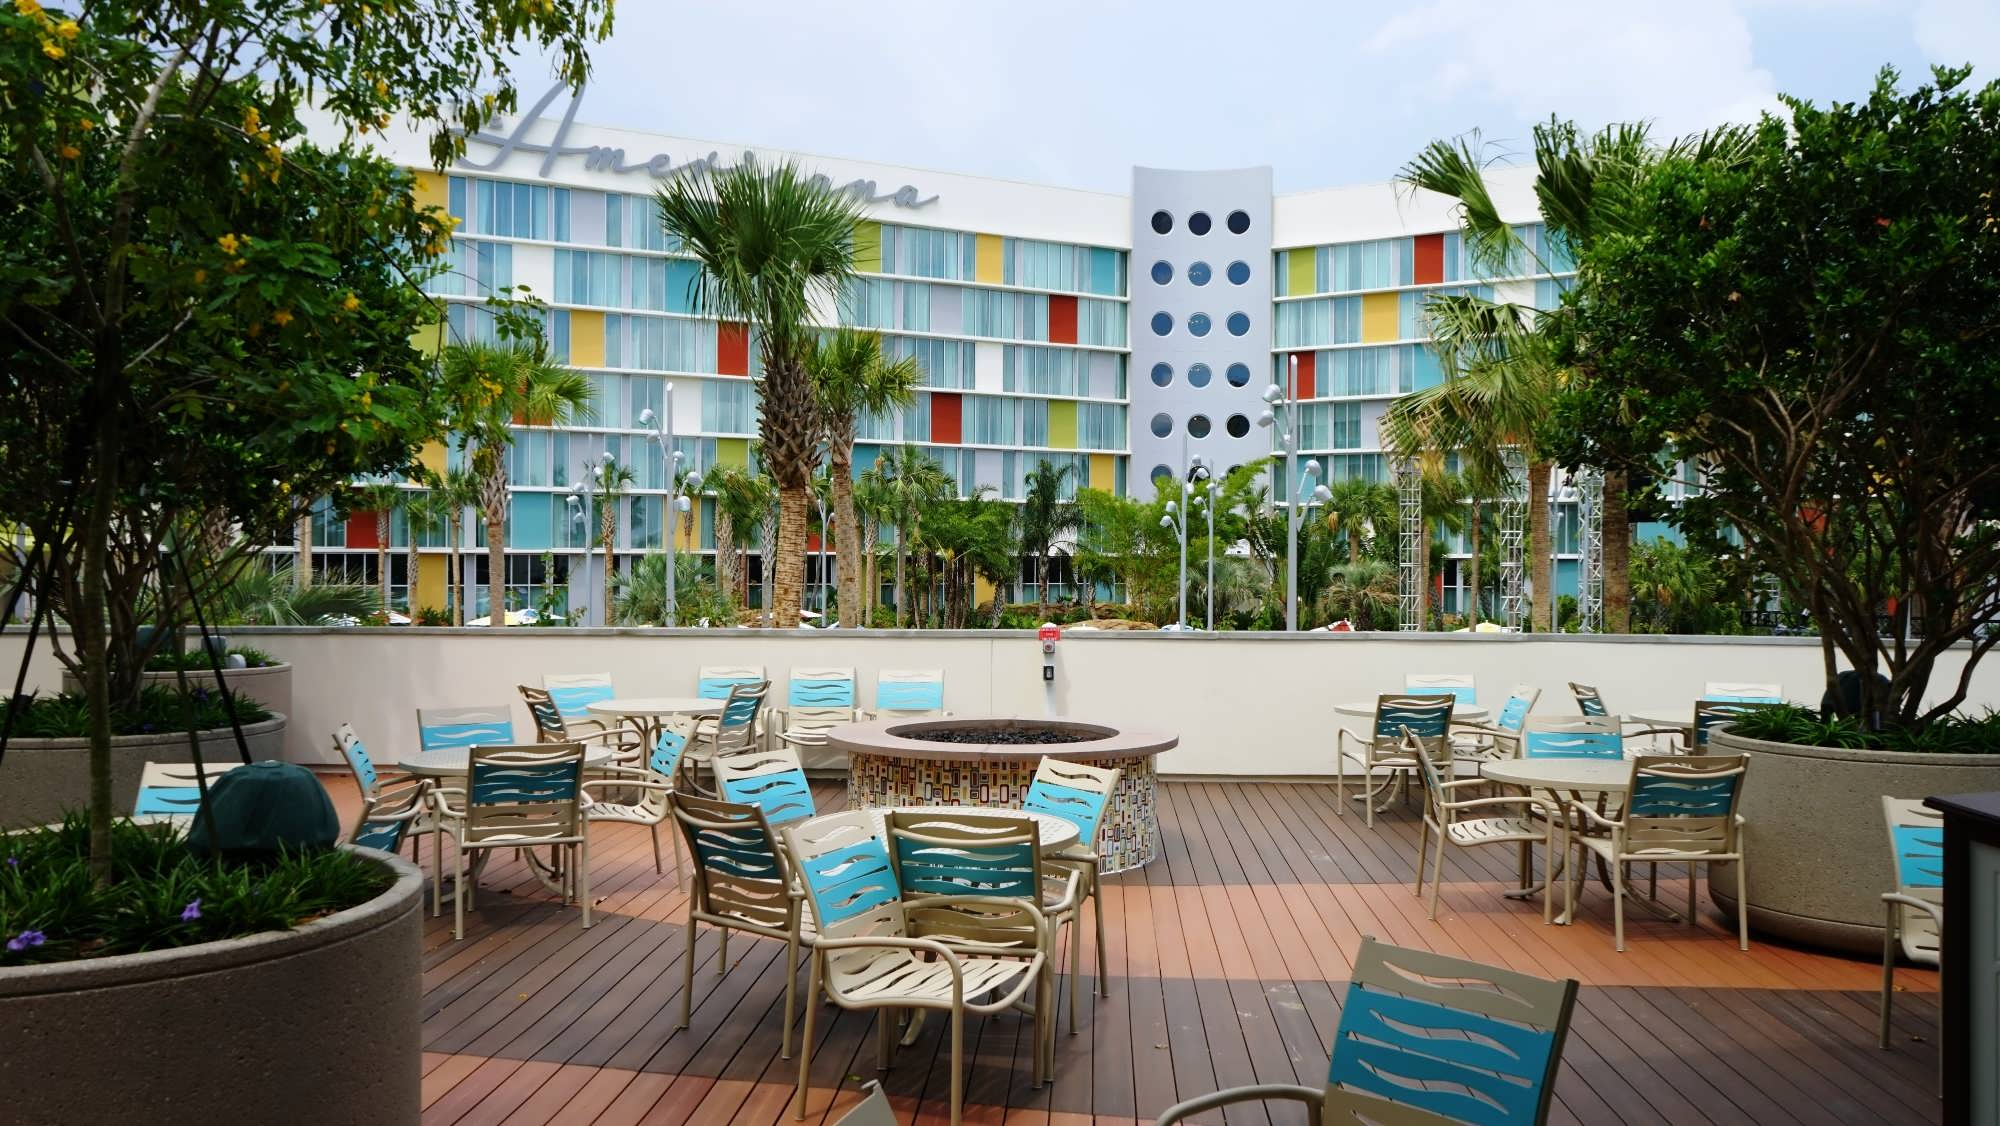 Hideaway Bar & Grille at Cabana Bay Beach Resort